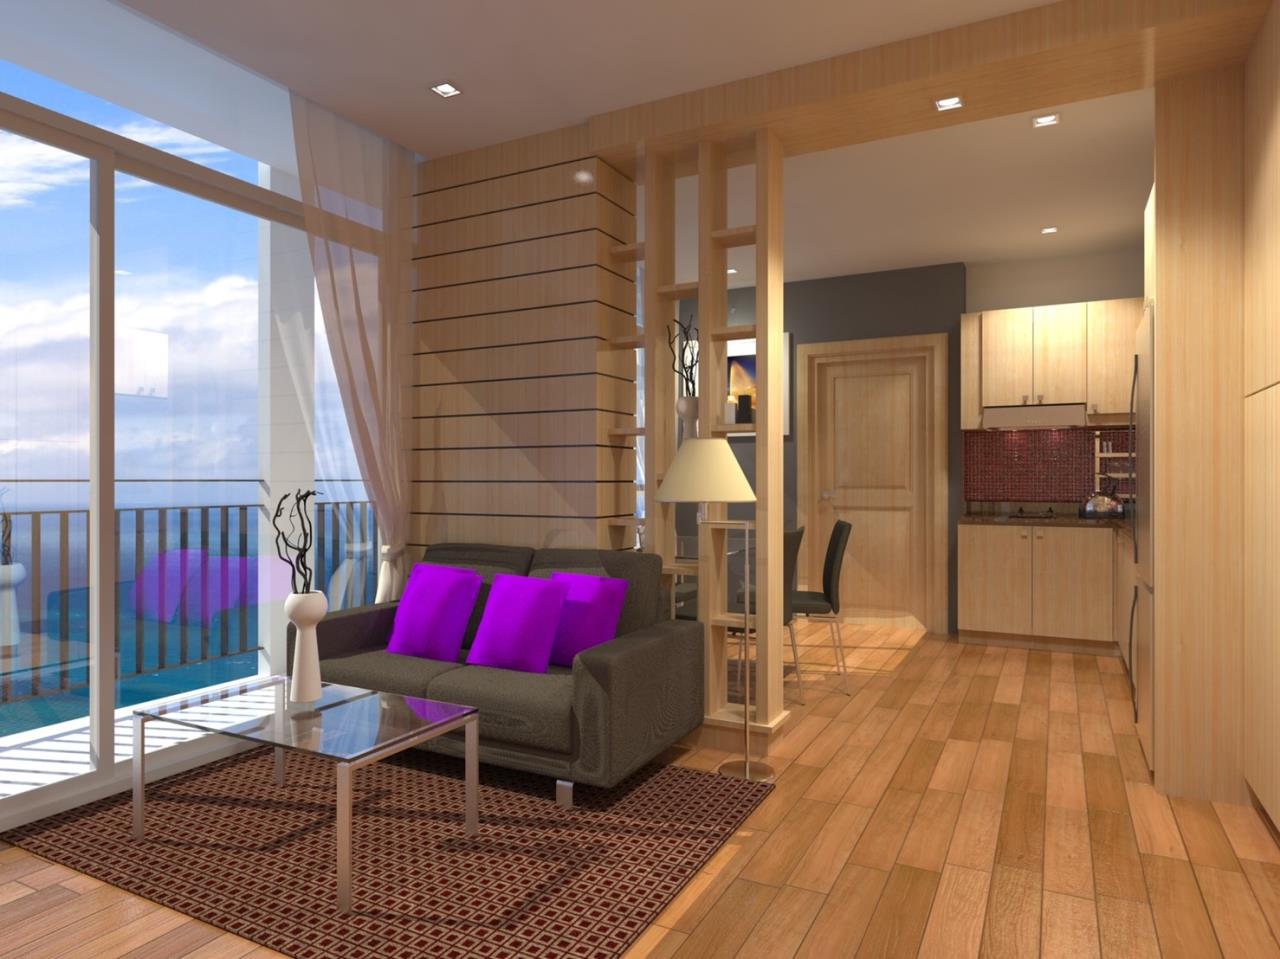 Signature Realty ( Thailand ) Co Ltd Agency's Furnished 2bedroom 58 sq.m condo with jacuzzi floor 2-10 at The Grand Jomtein Beach Pattaya 6